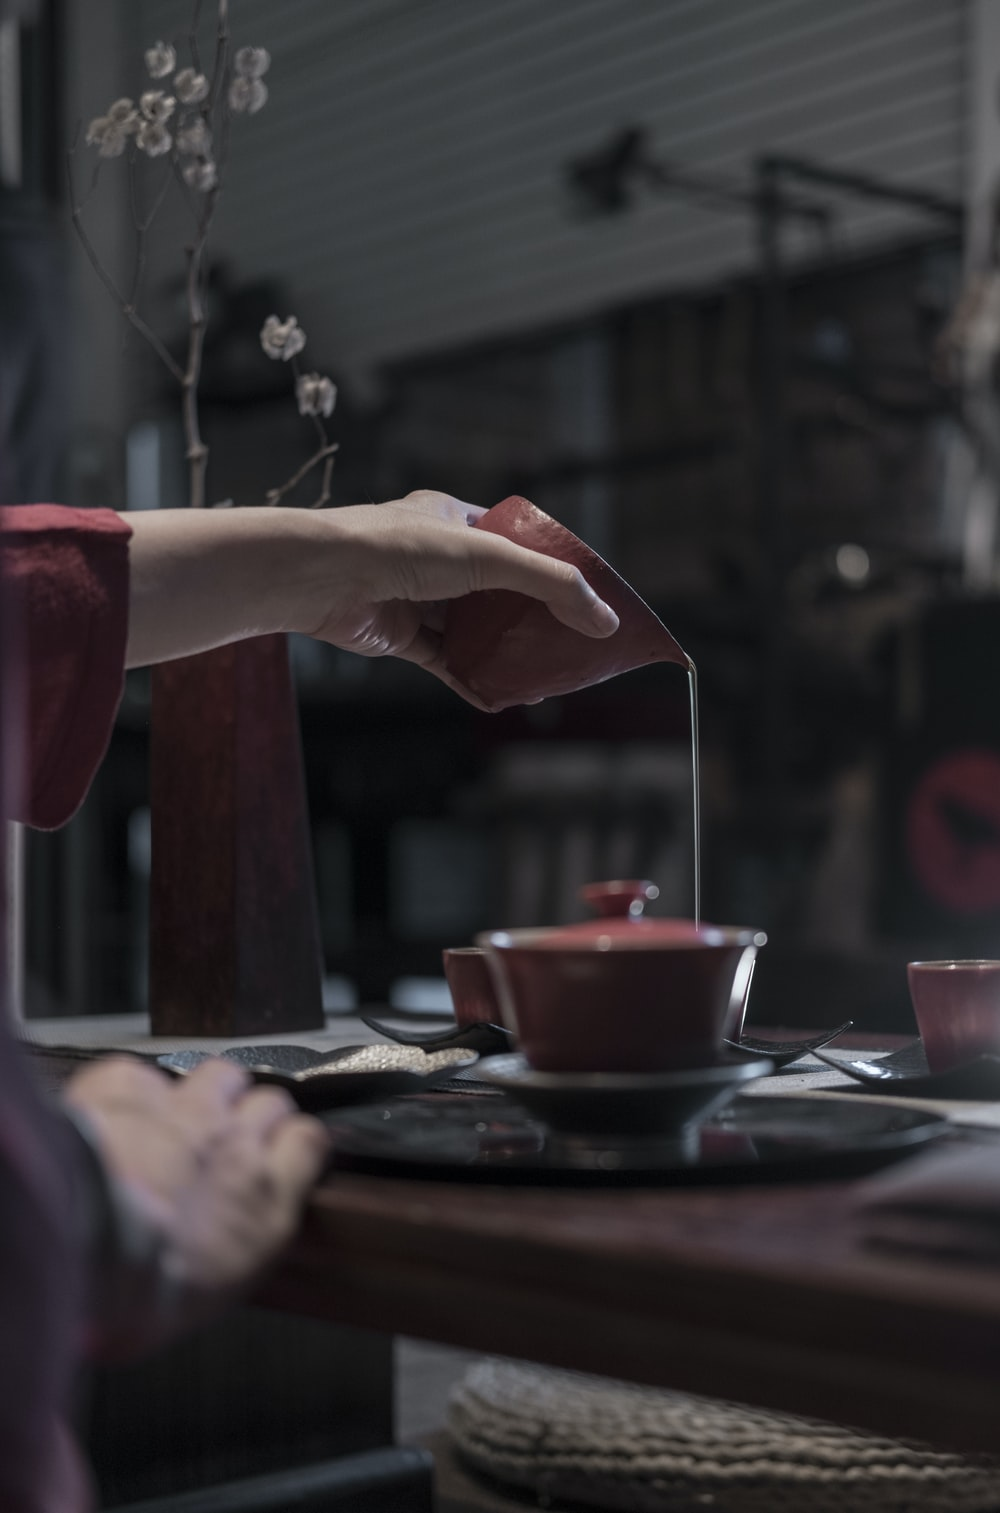 person pouring liquid on cup